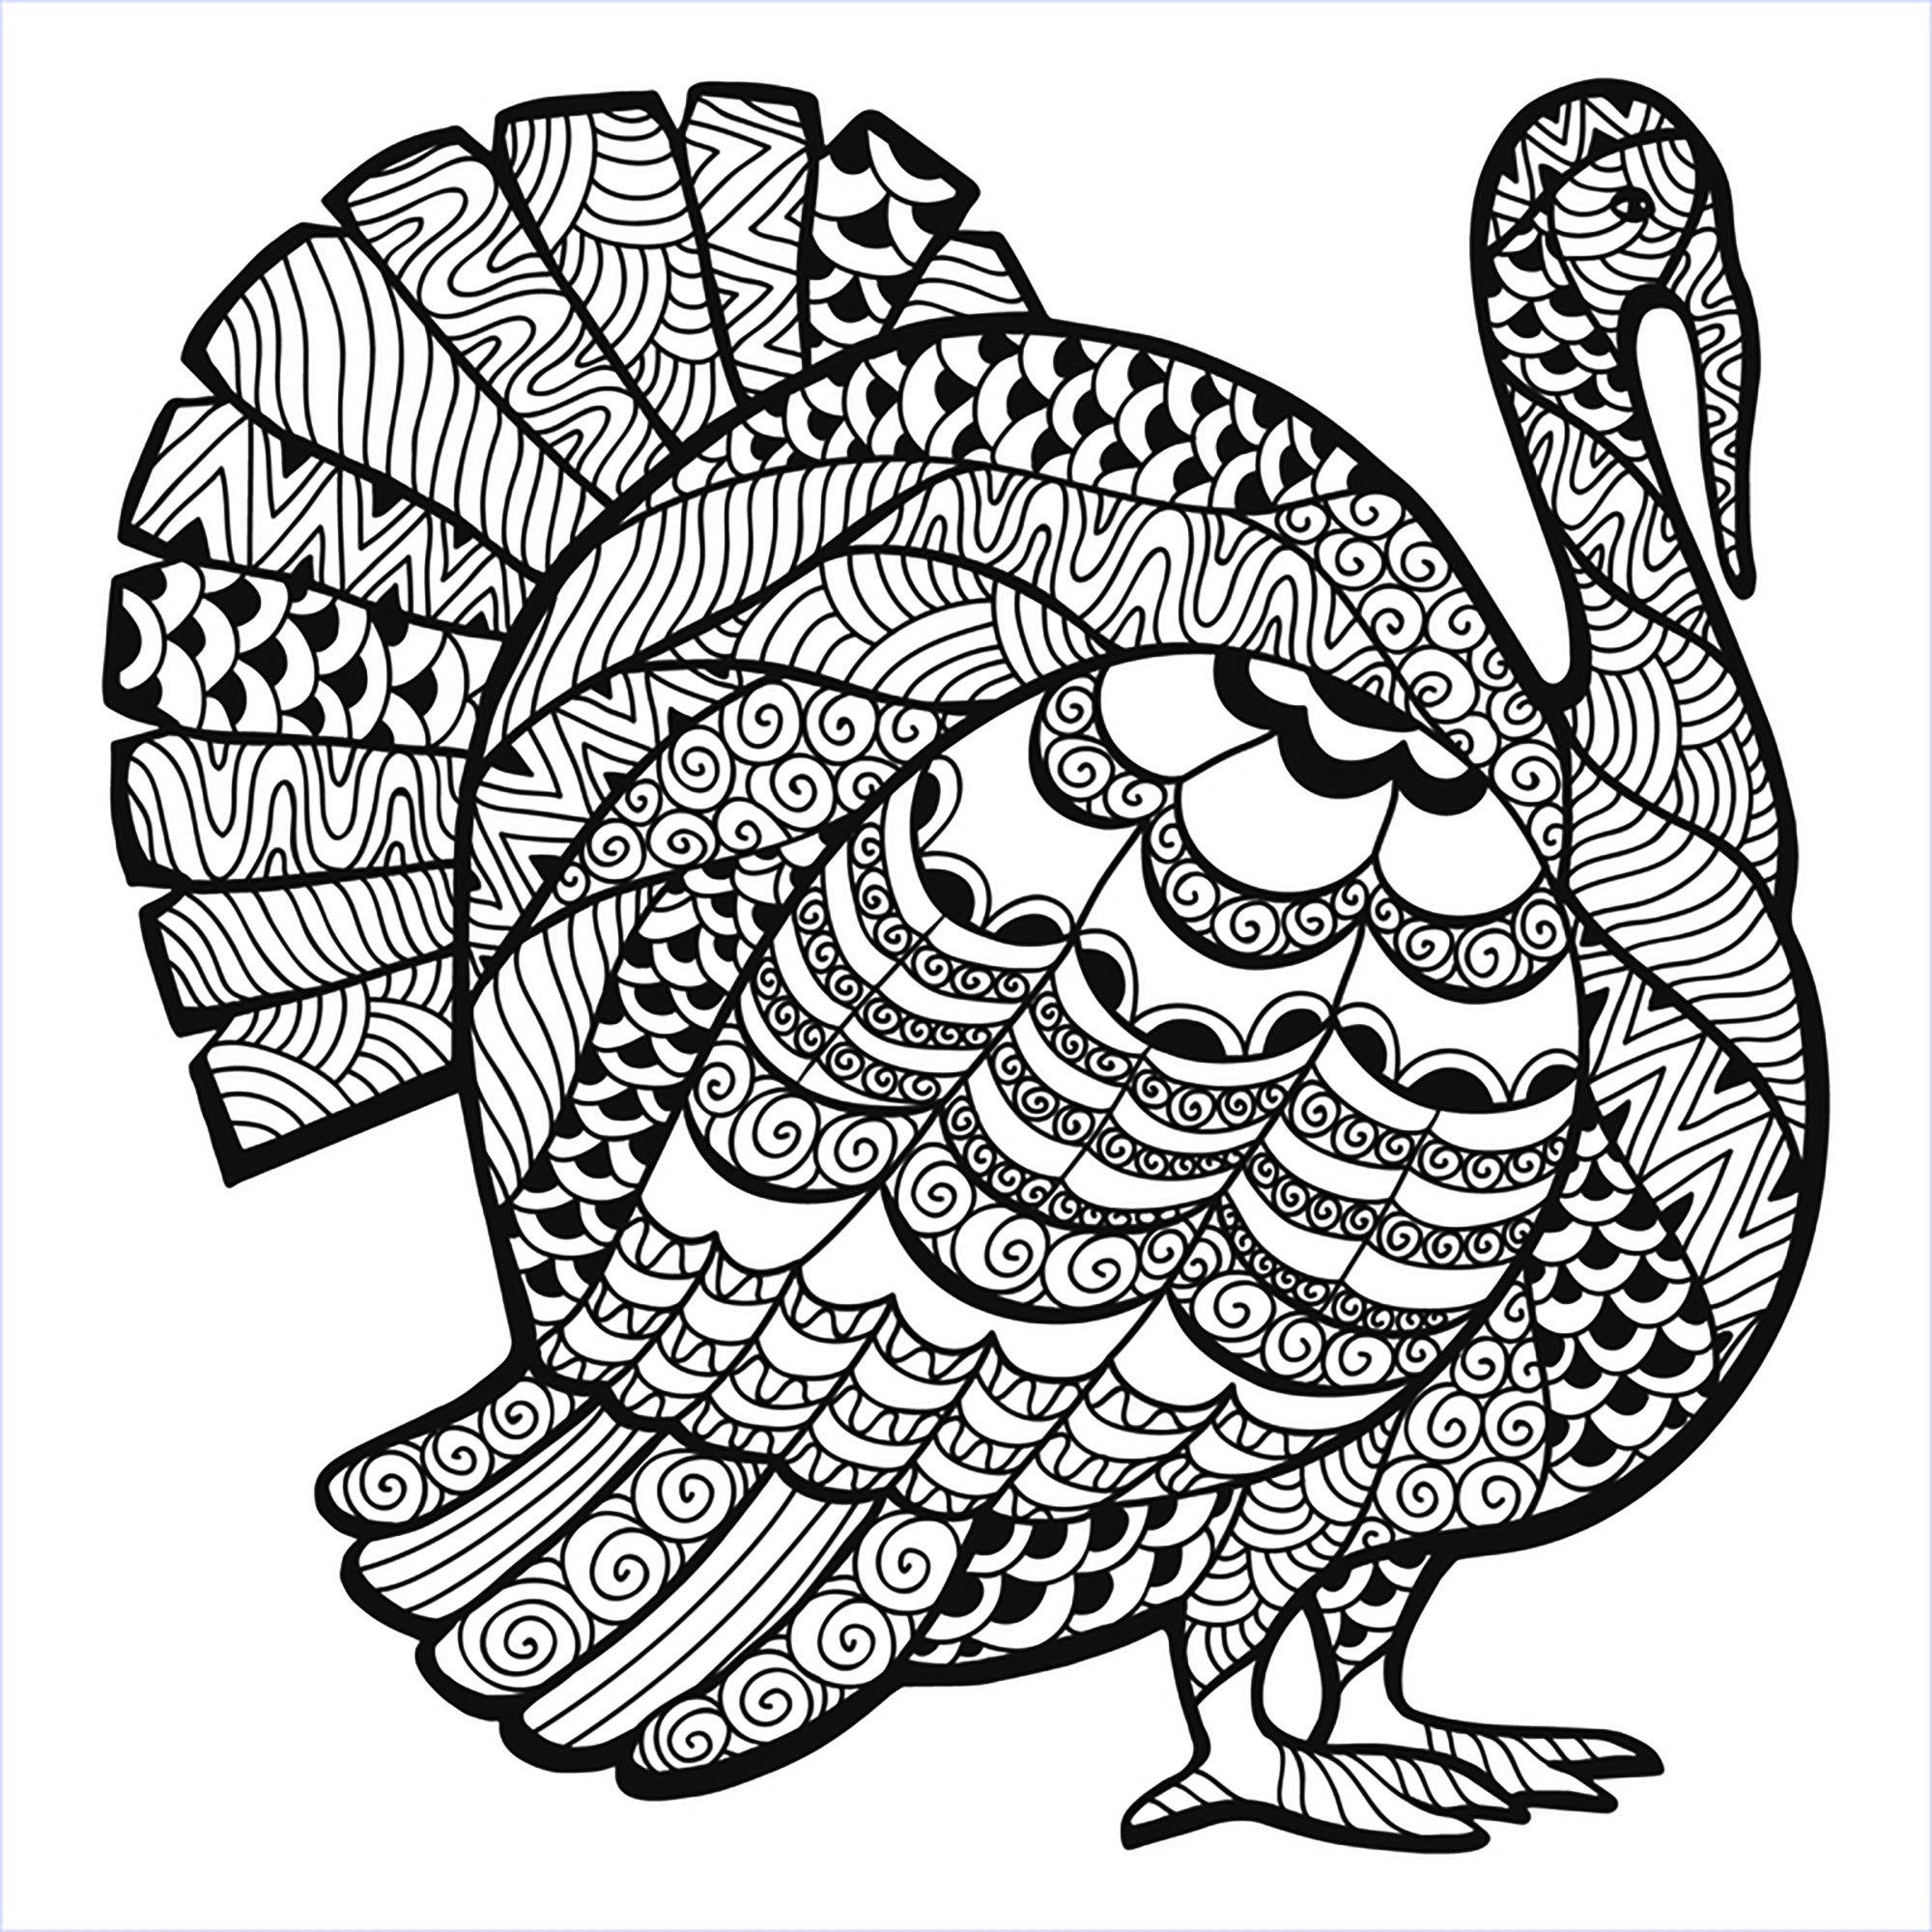 thanksgiving turkey zentangle coloring page - Free Thanksgiving Coloring Pages